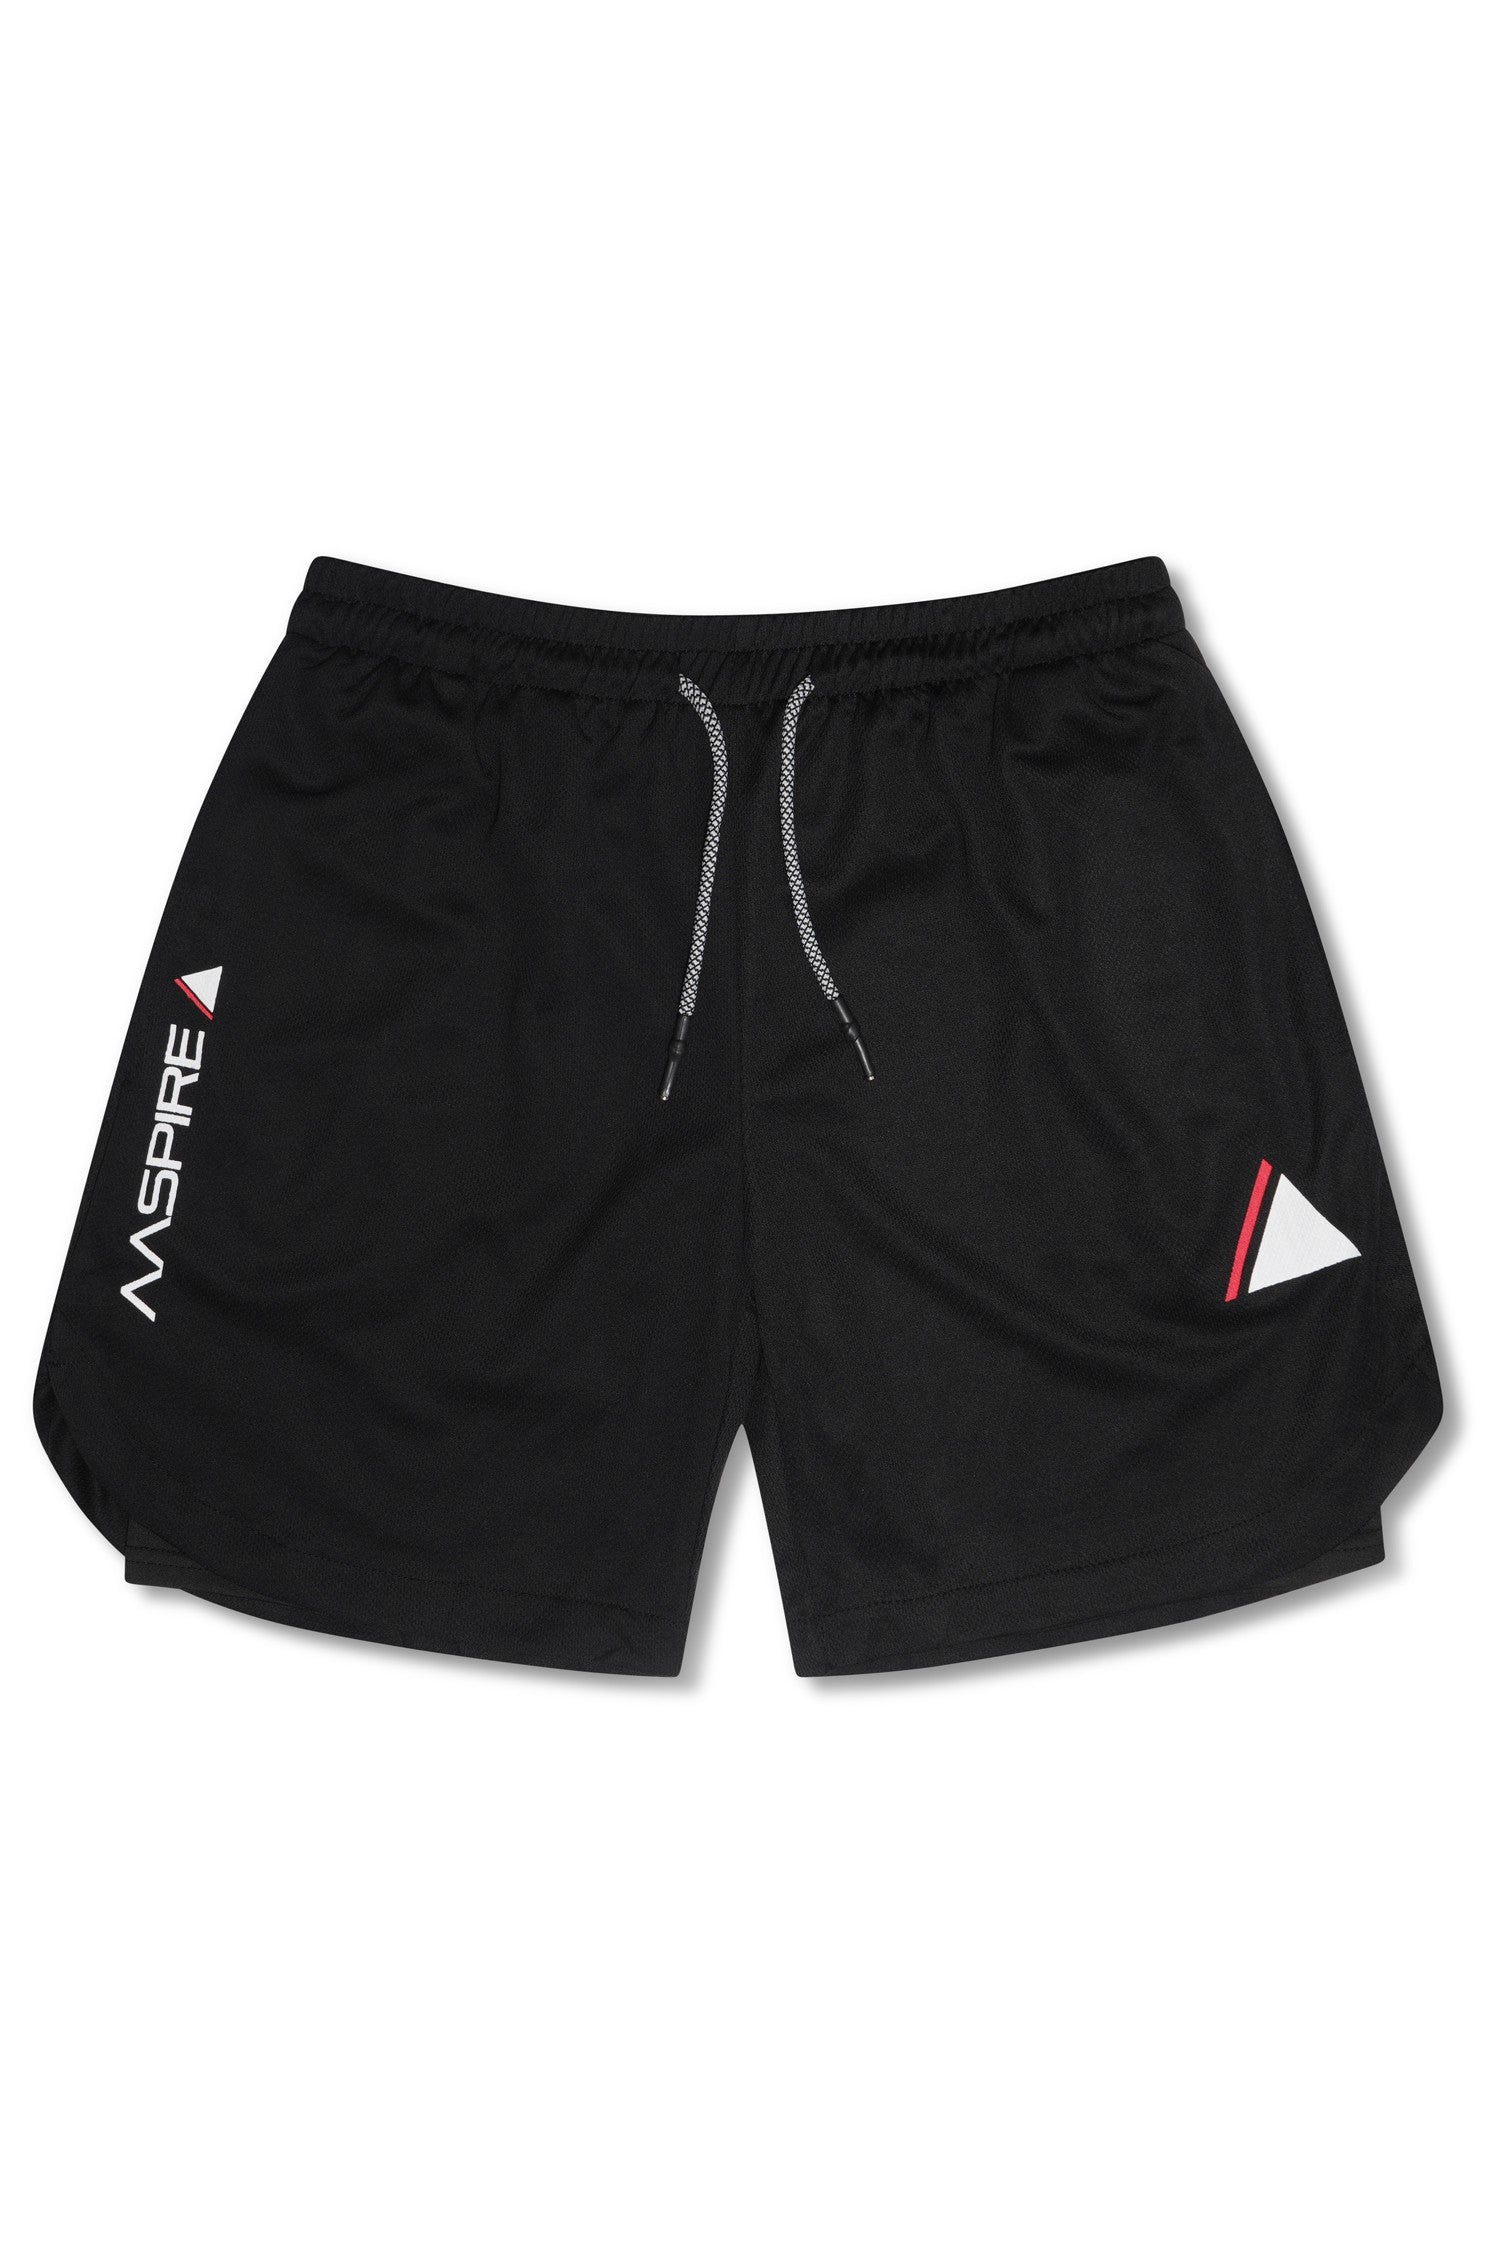 AASPIRE FLEX FIT SHORTS (BLACK)